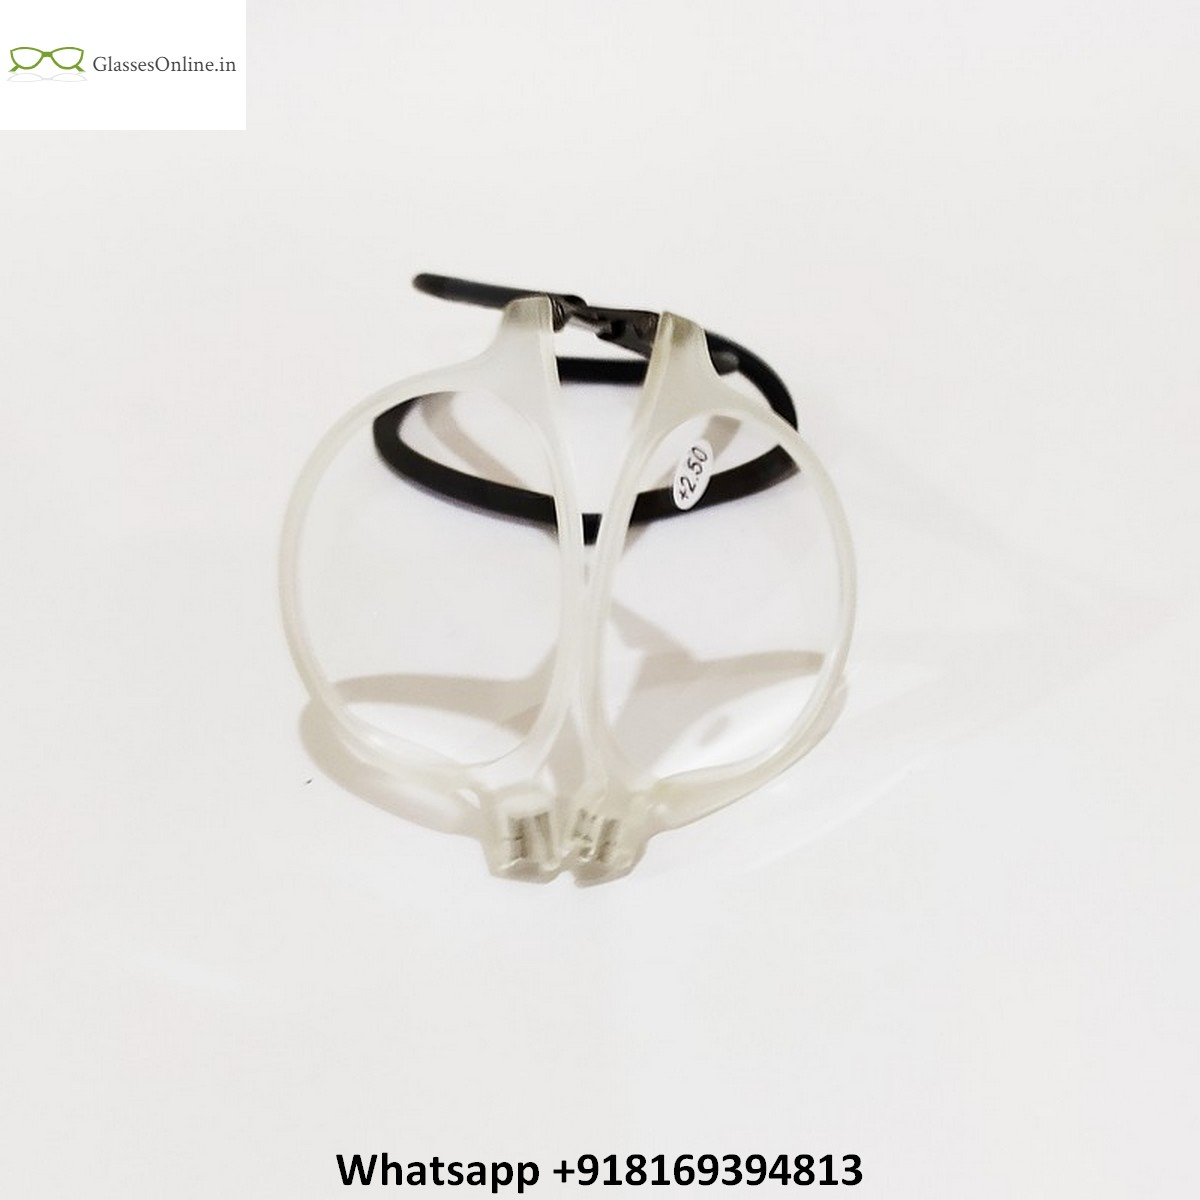 Round Neck Hanging Magnetic Reading Glasses